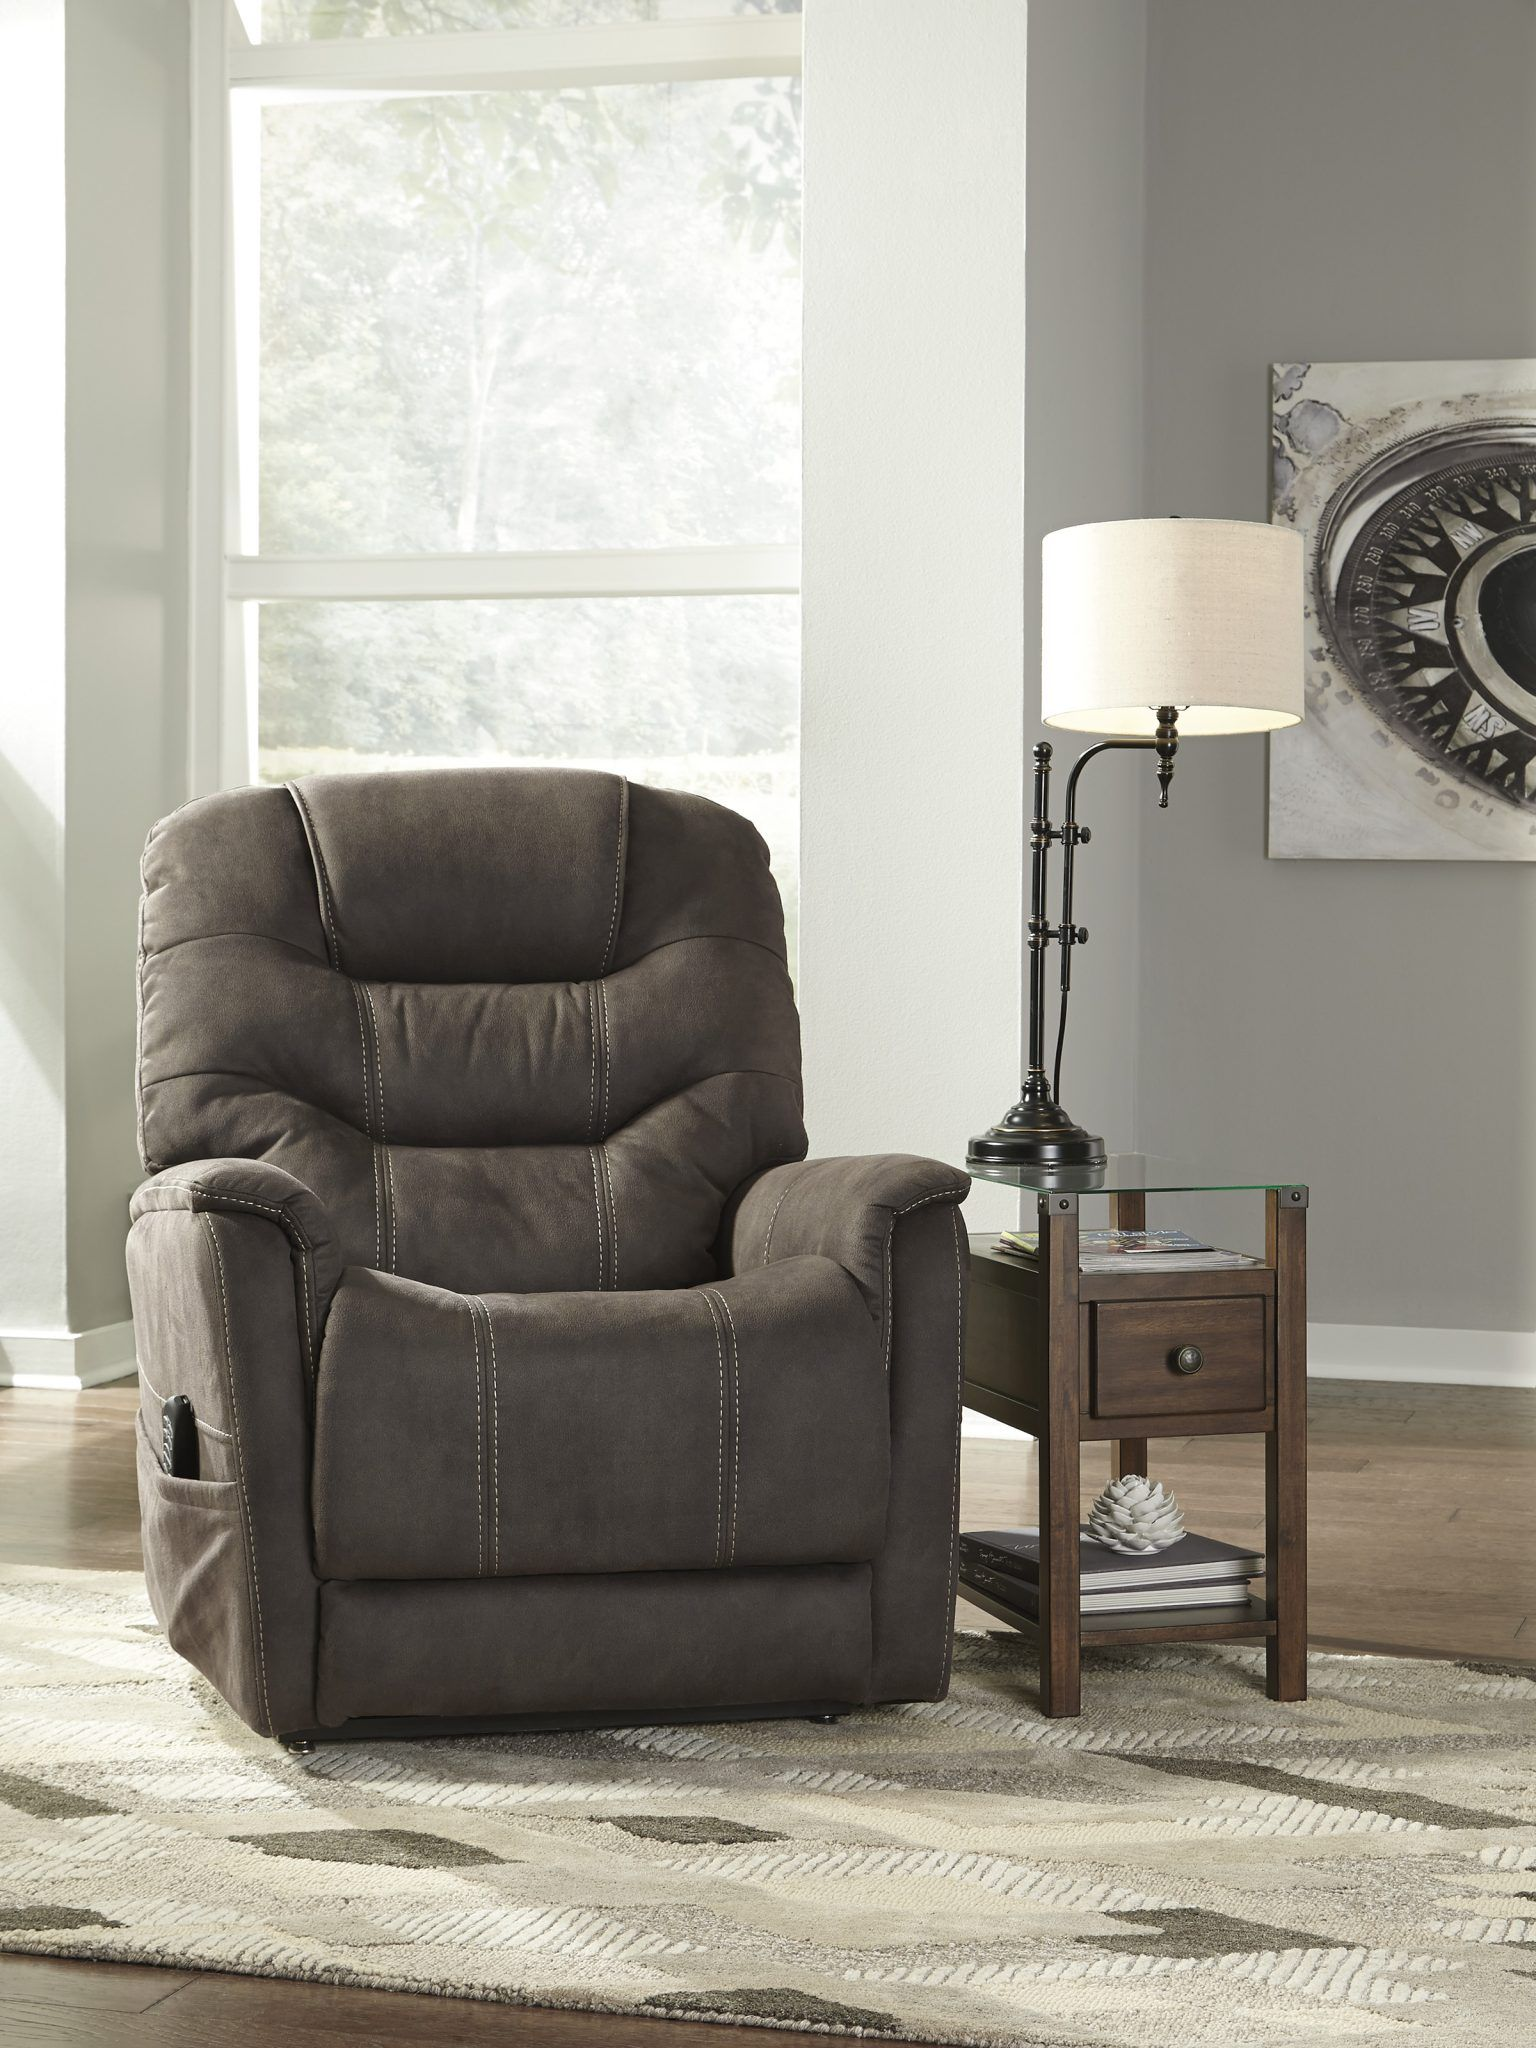 Power Lift Recliner Ballister Gunmetal Complete Suite Furniture Lift Recliners Ashley Furniture Rocker Recliners